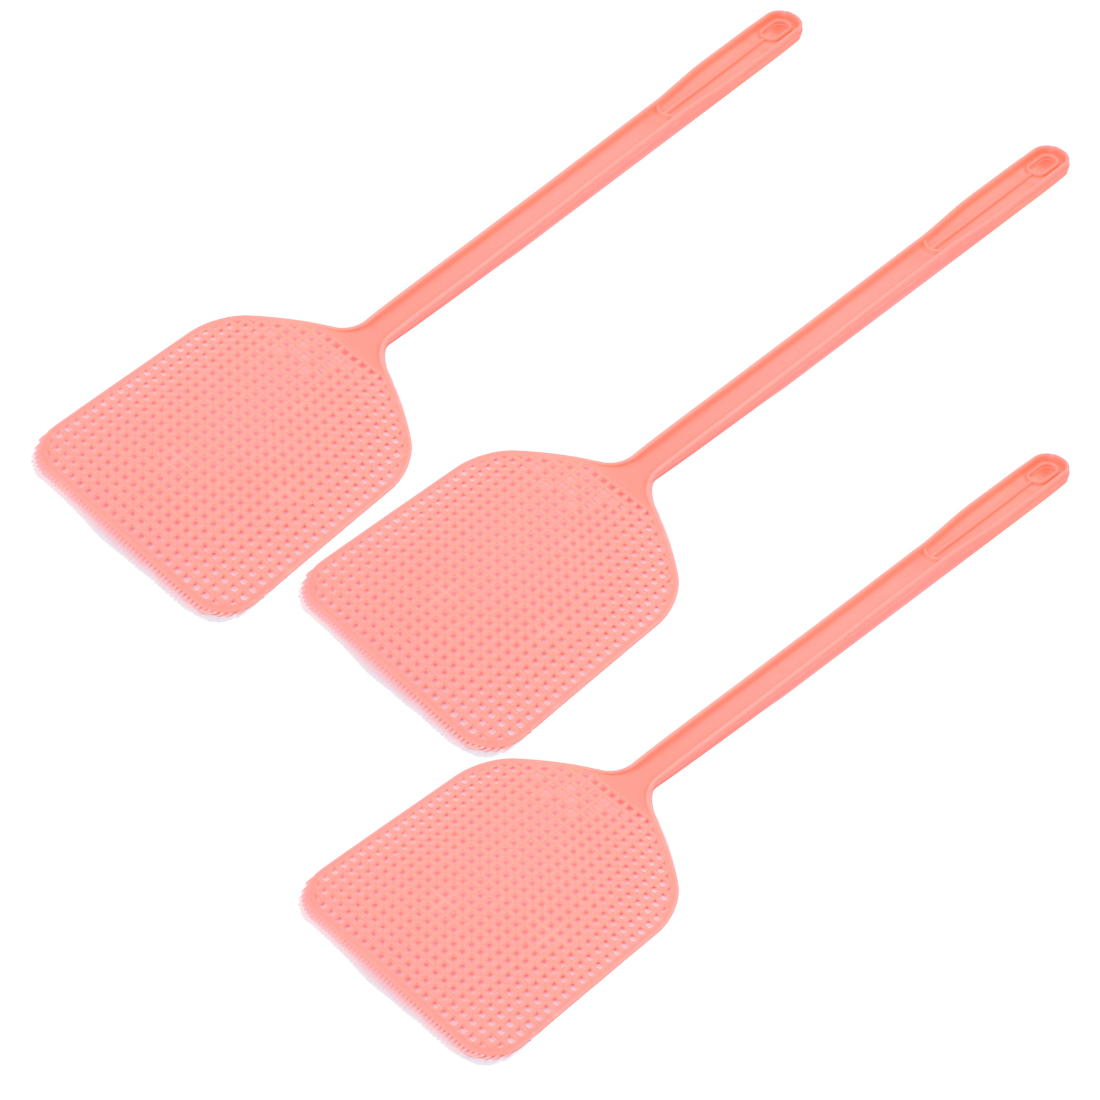 Plastic Novelty Hand Held Mosquito Fly Bug Pest Swatter 44cm Long Pink 3PCS